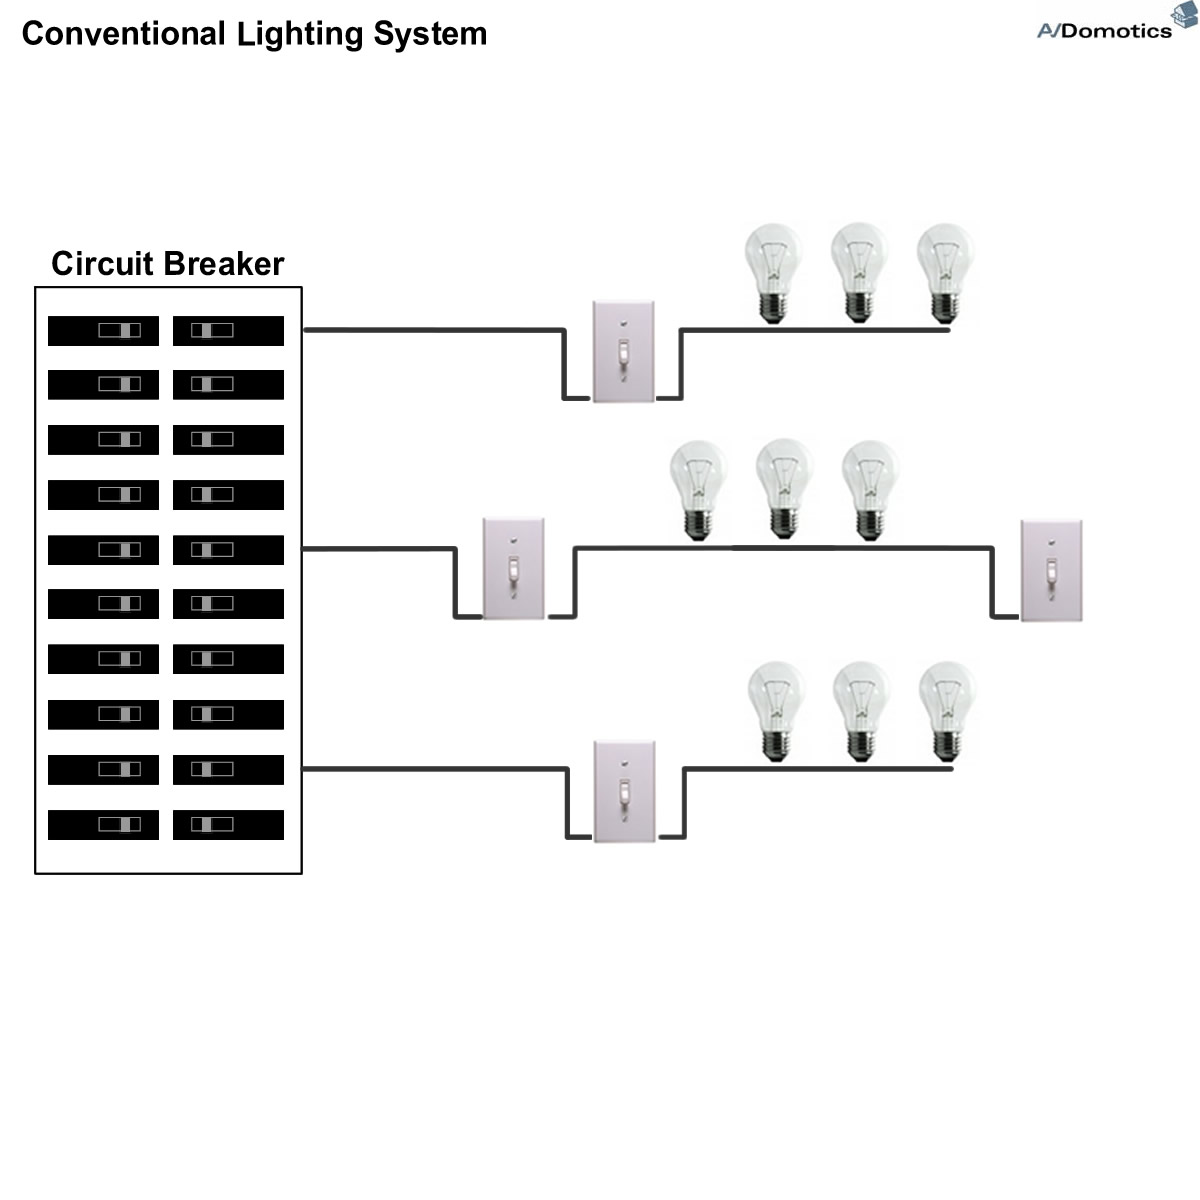 ConventionalLightingDiagram avdomotics smart home technology smart home wiring diagram pdf at reclaimingppi.co